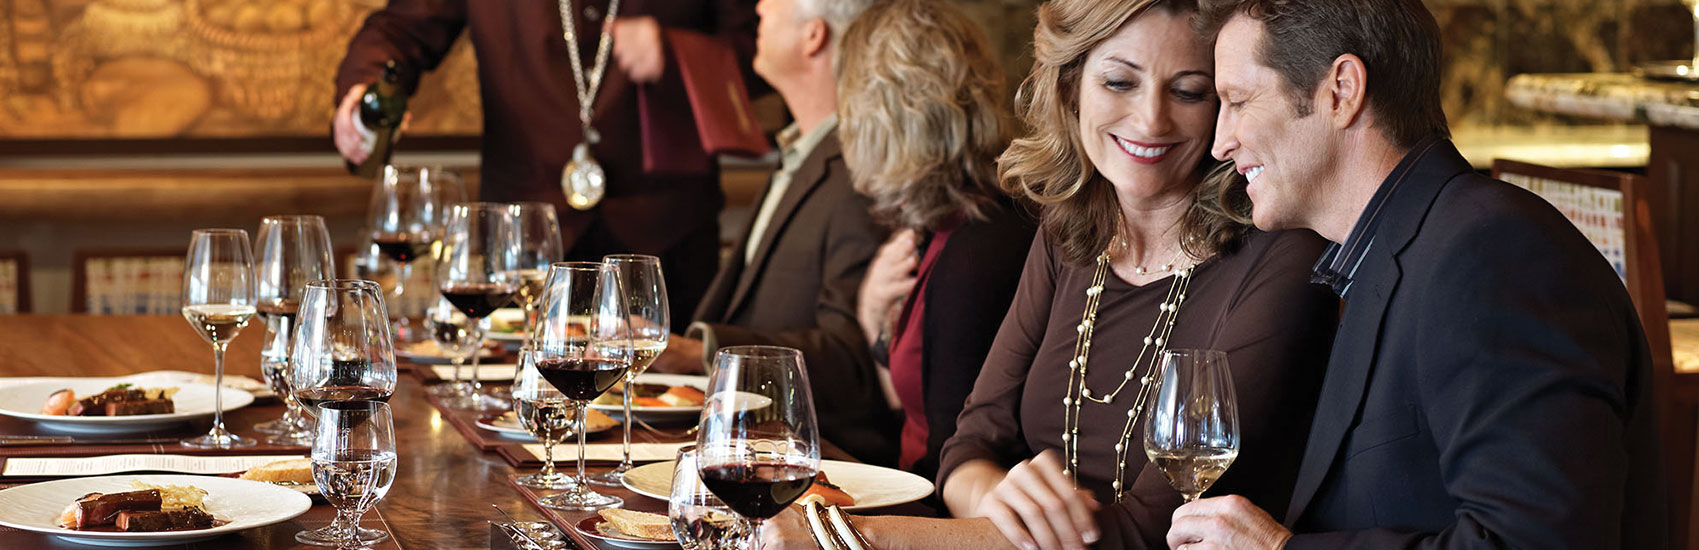 Experience the World with Oceania Cruises